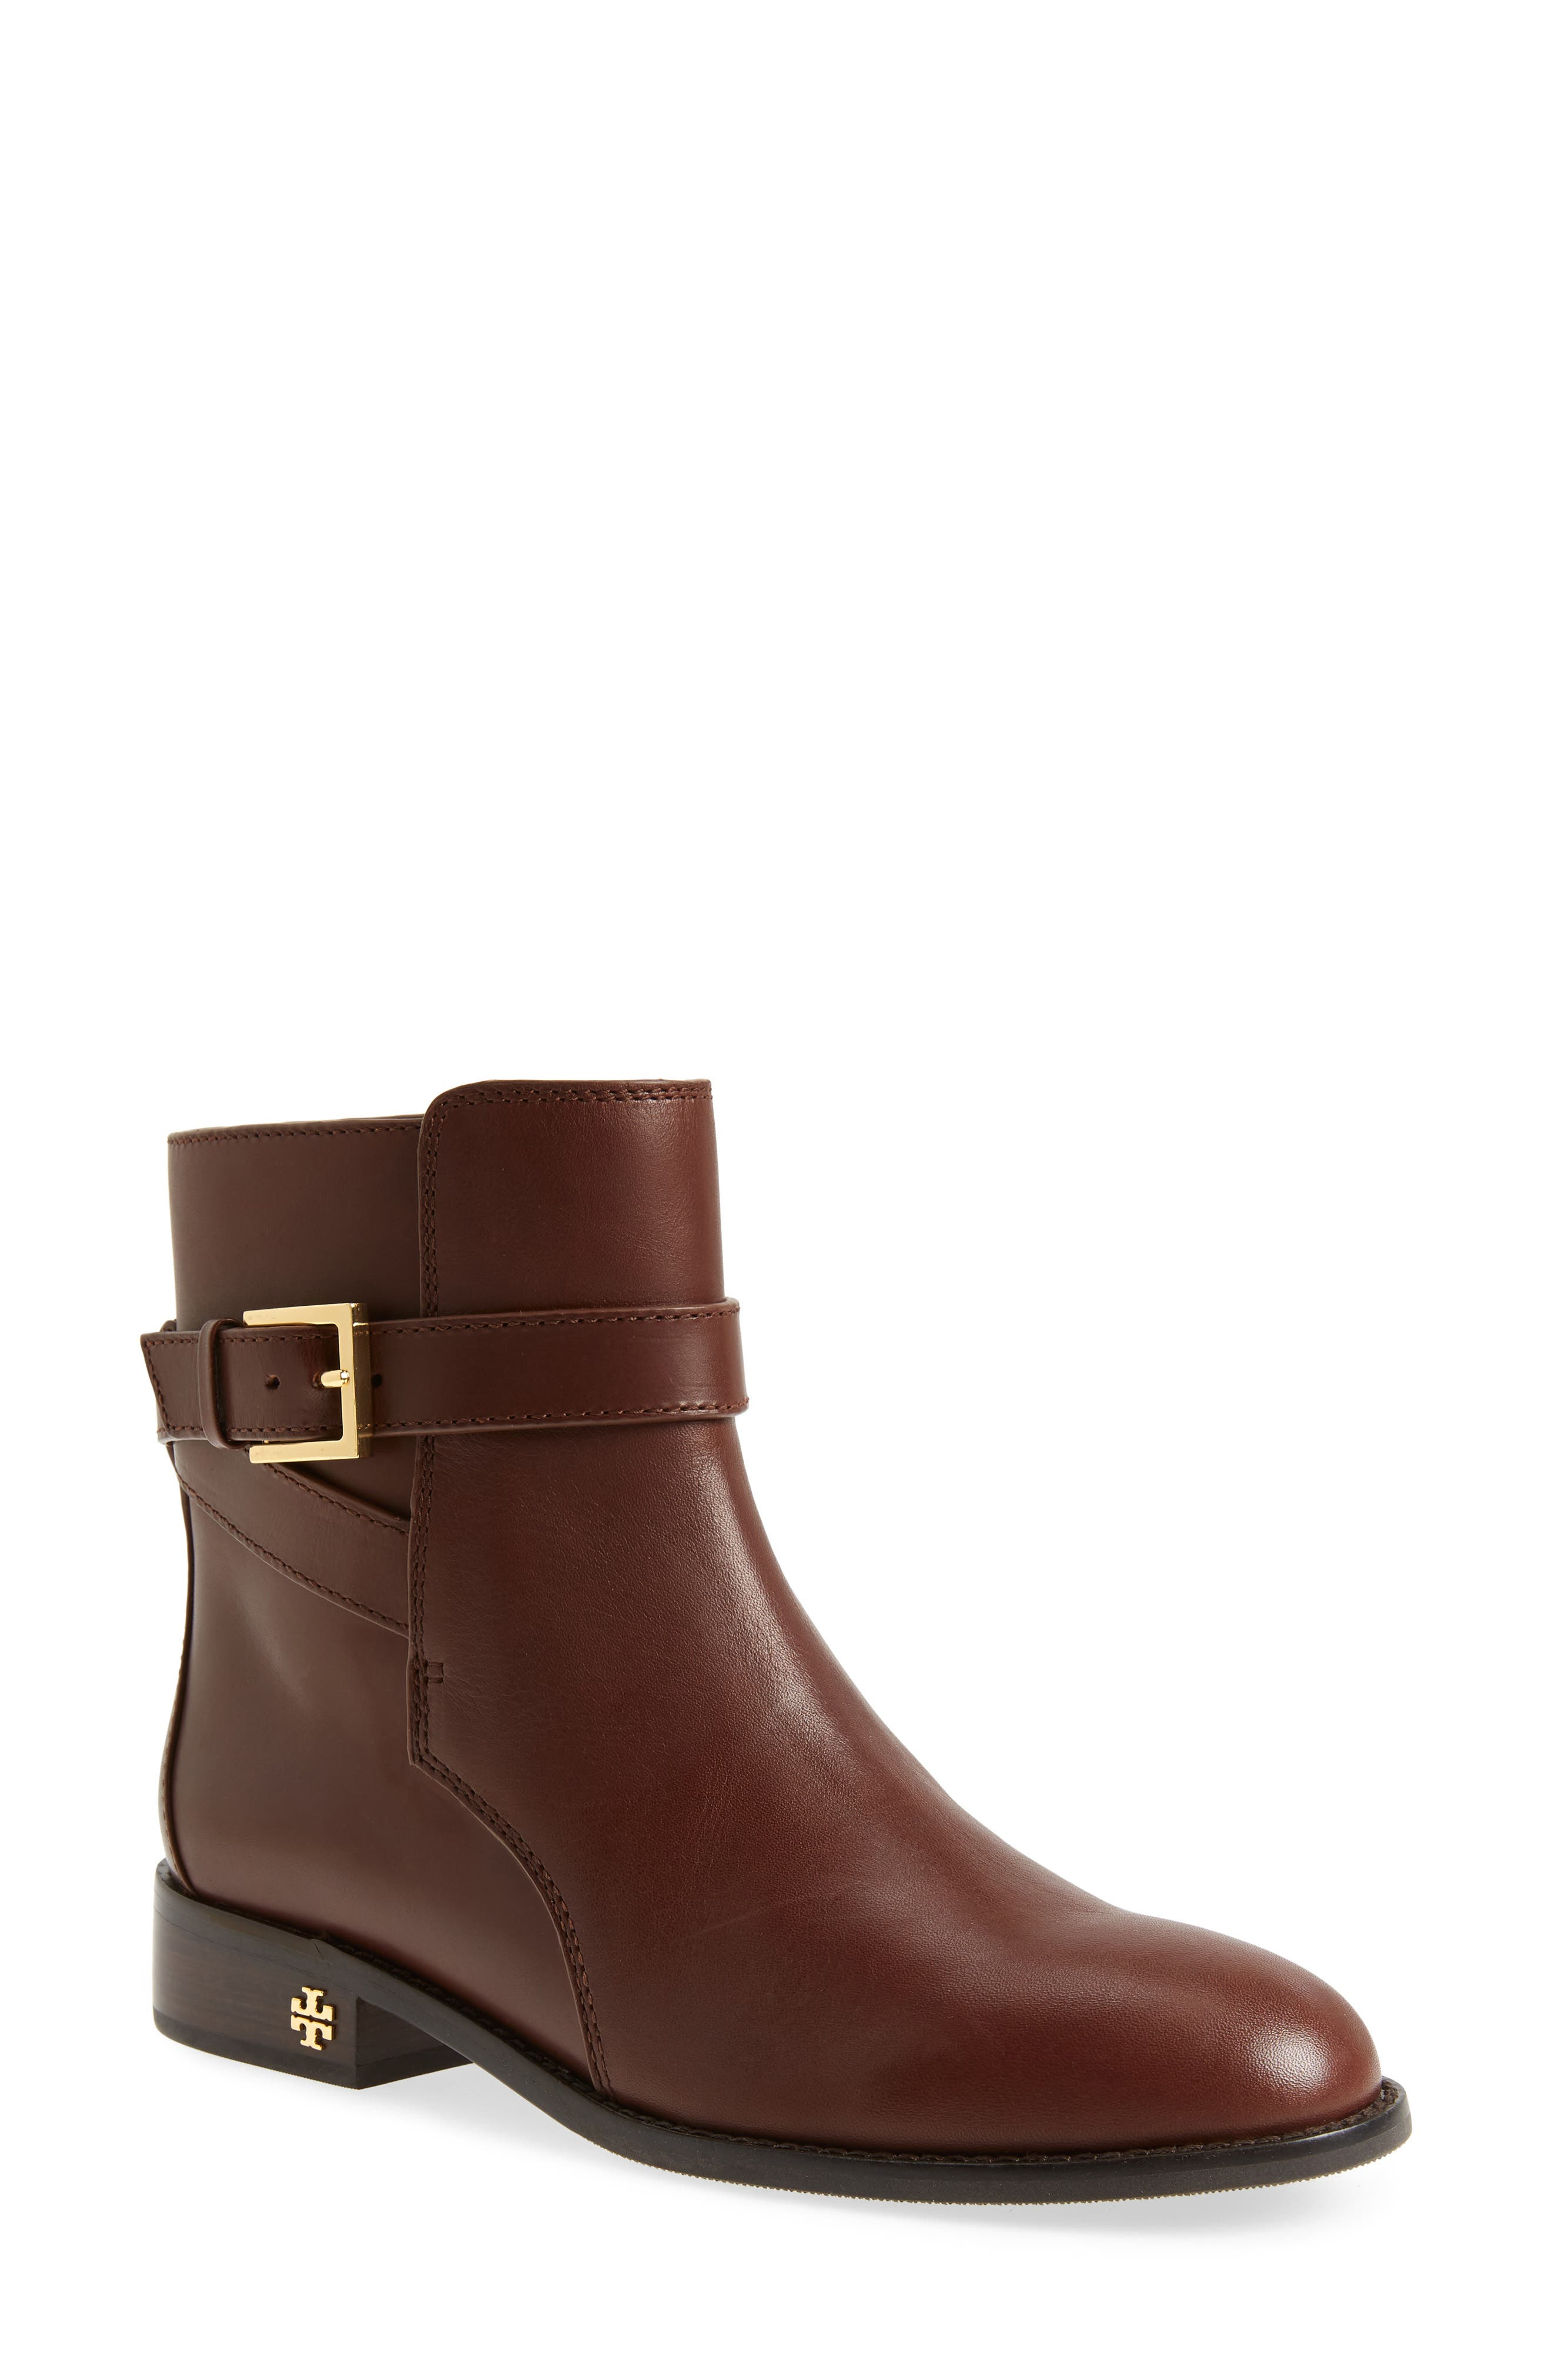 Brooke Bootie,                         Main,                         color, PERFECT BROWN